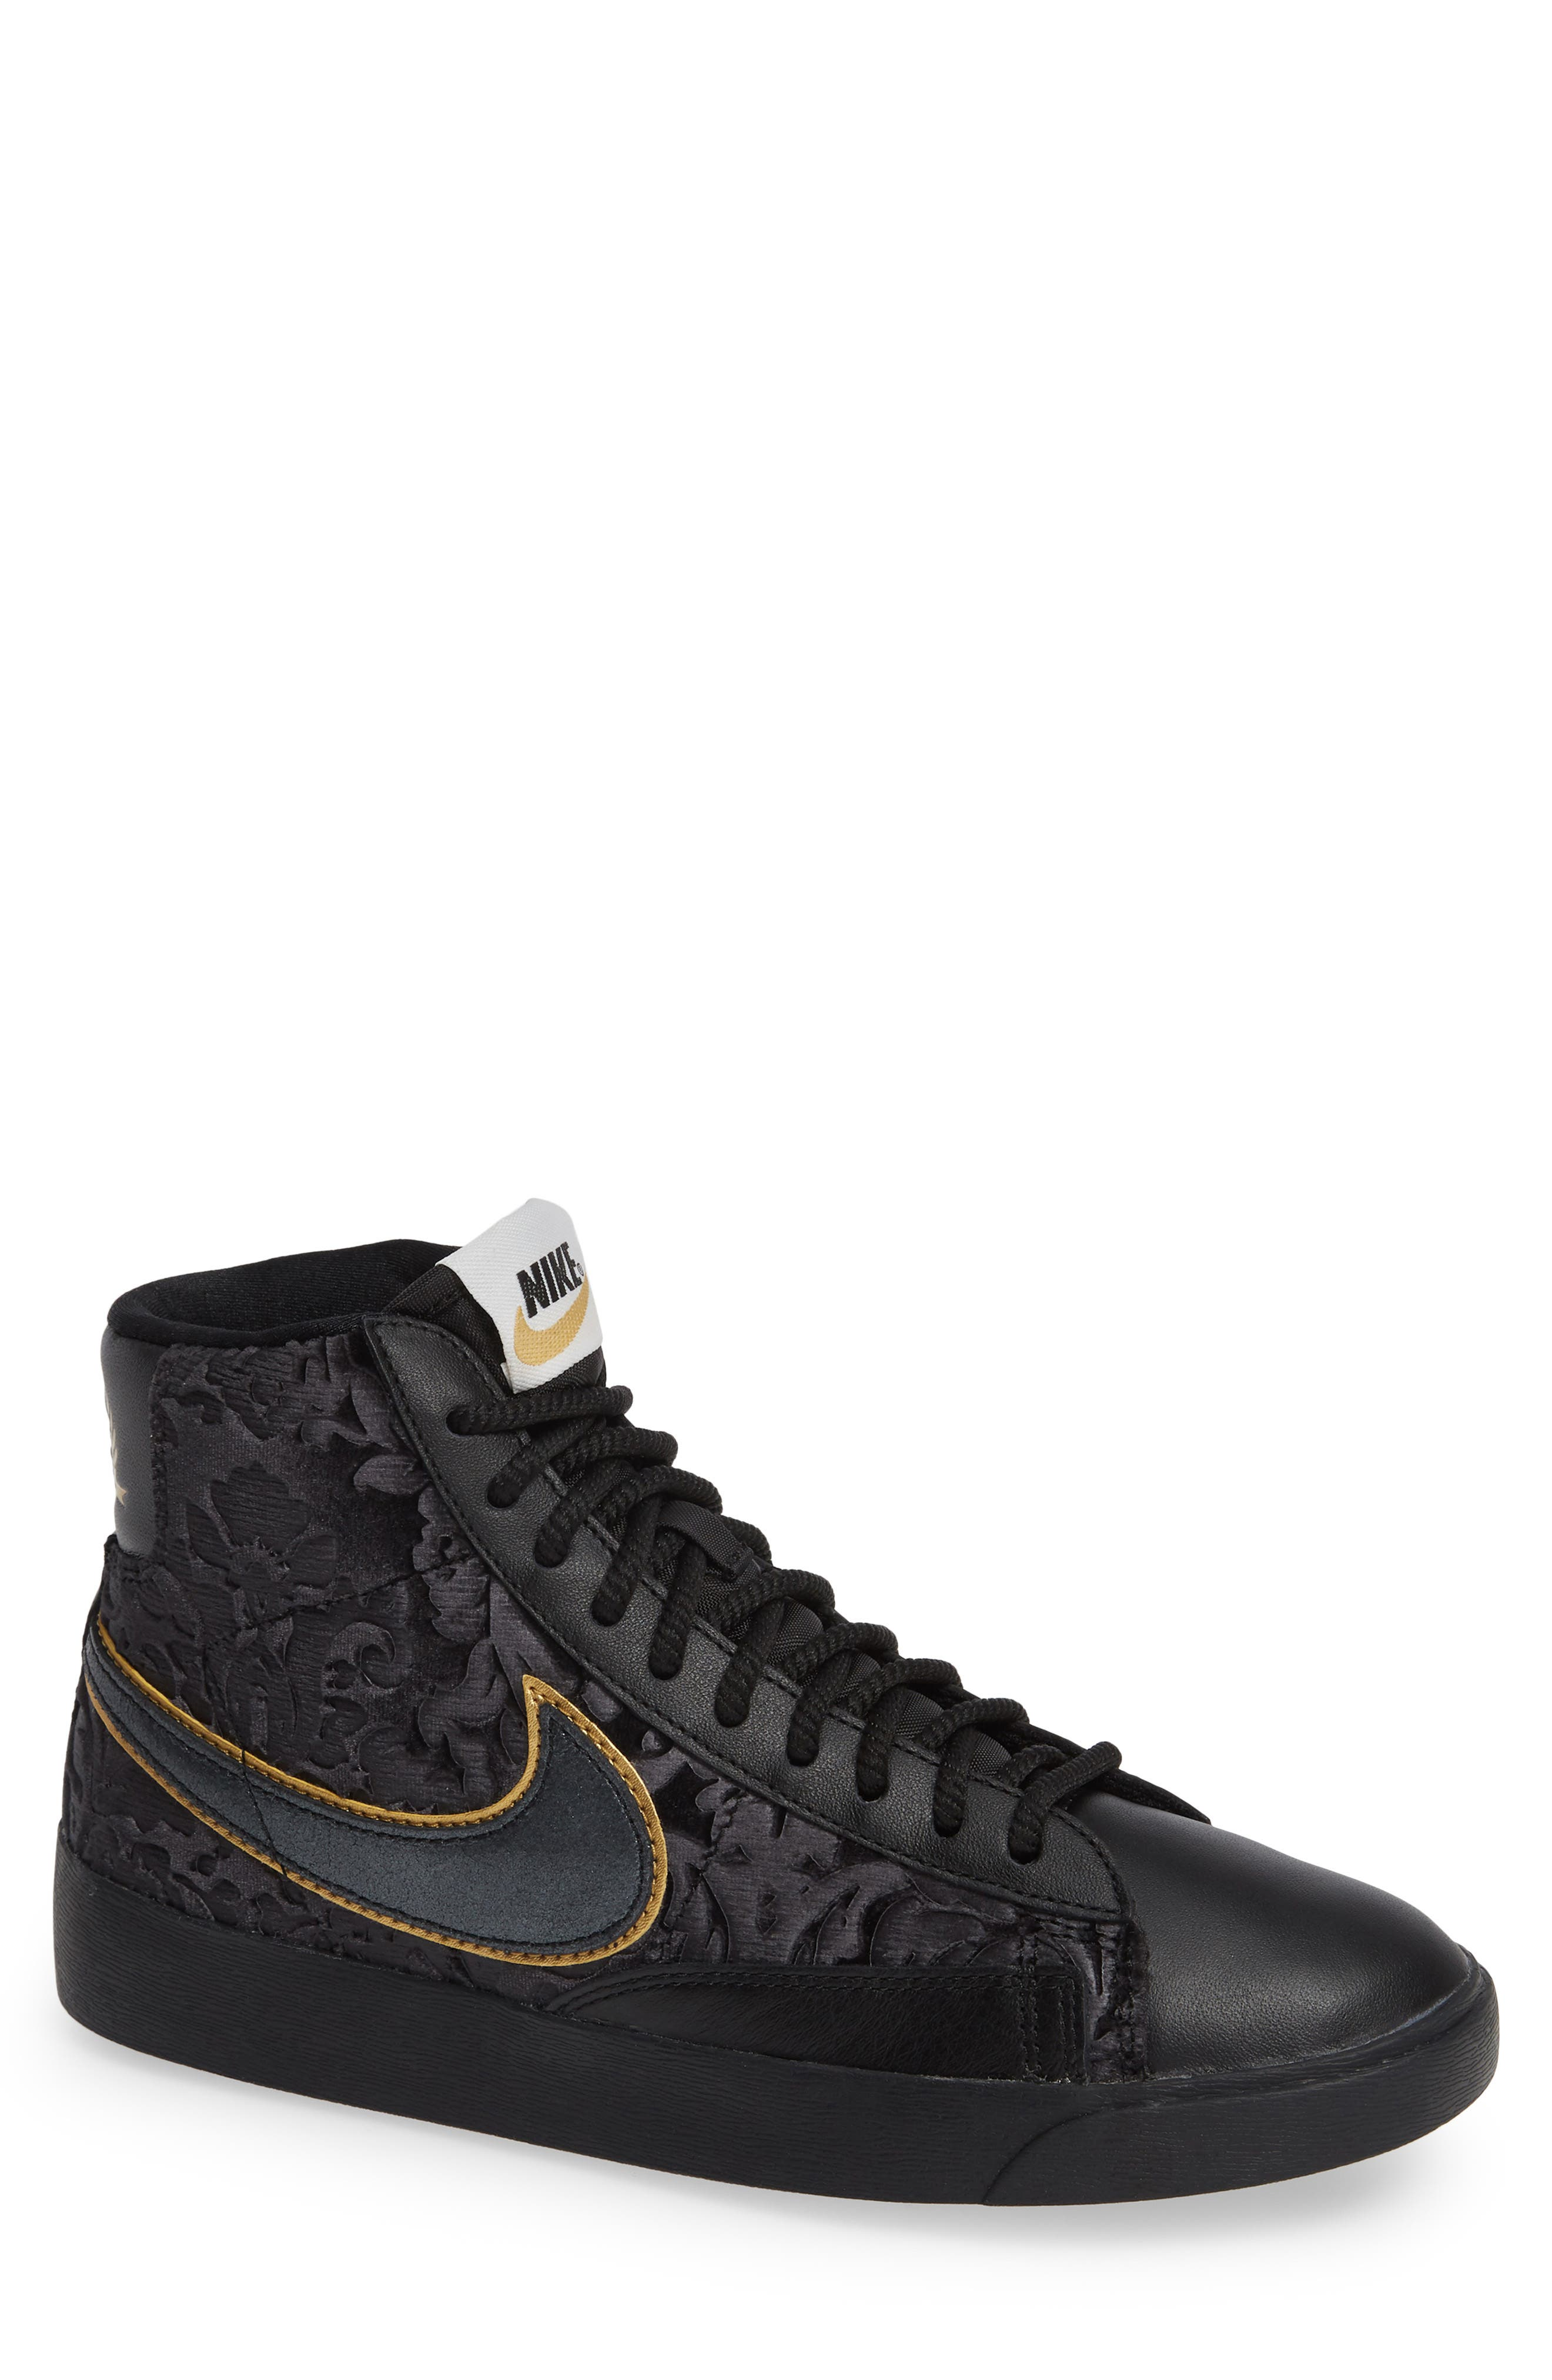 Blazer Mid Top Sneaker,                             Main thumbnail 1, color,                             BLACK/ GOLD/ SUMMIT WHITE